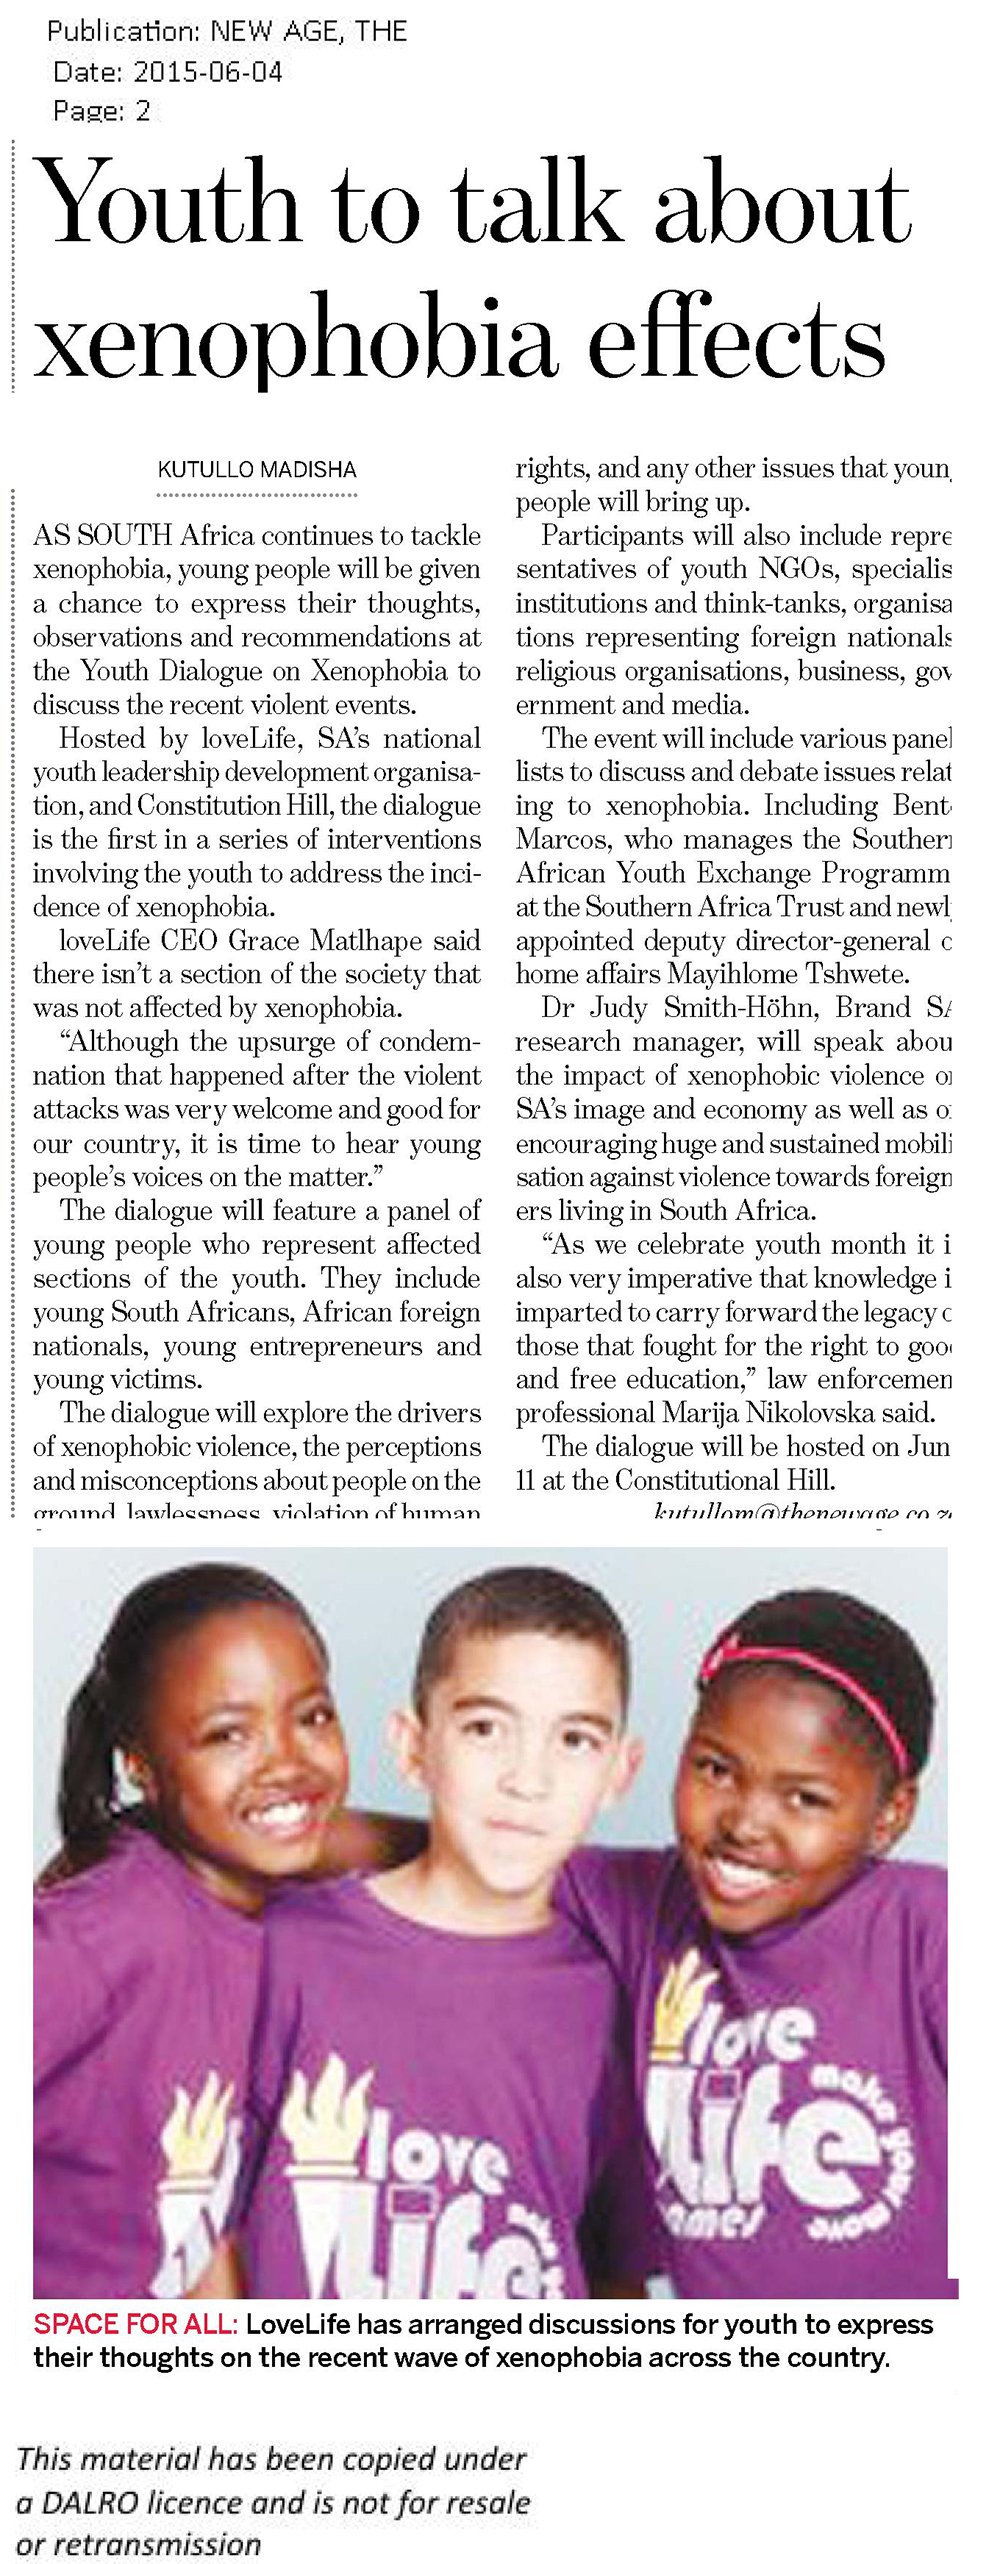 THE-NEW-AGE---XENOPHOBIA